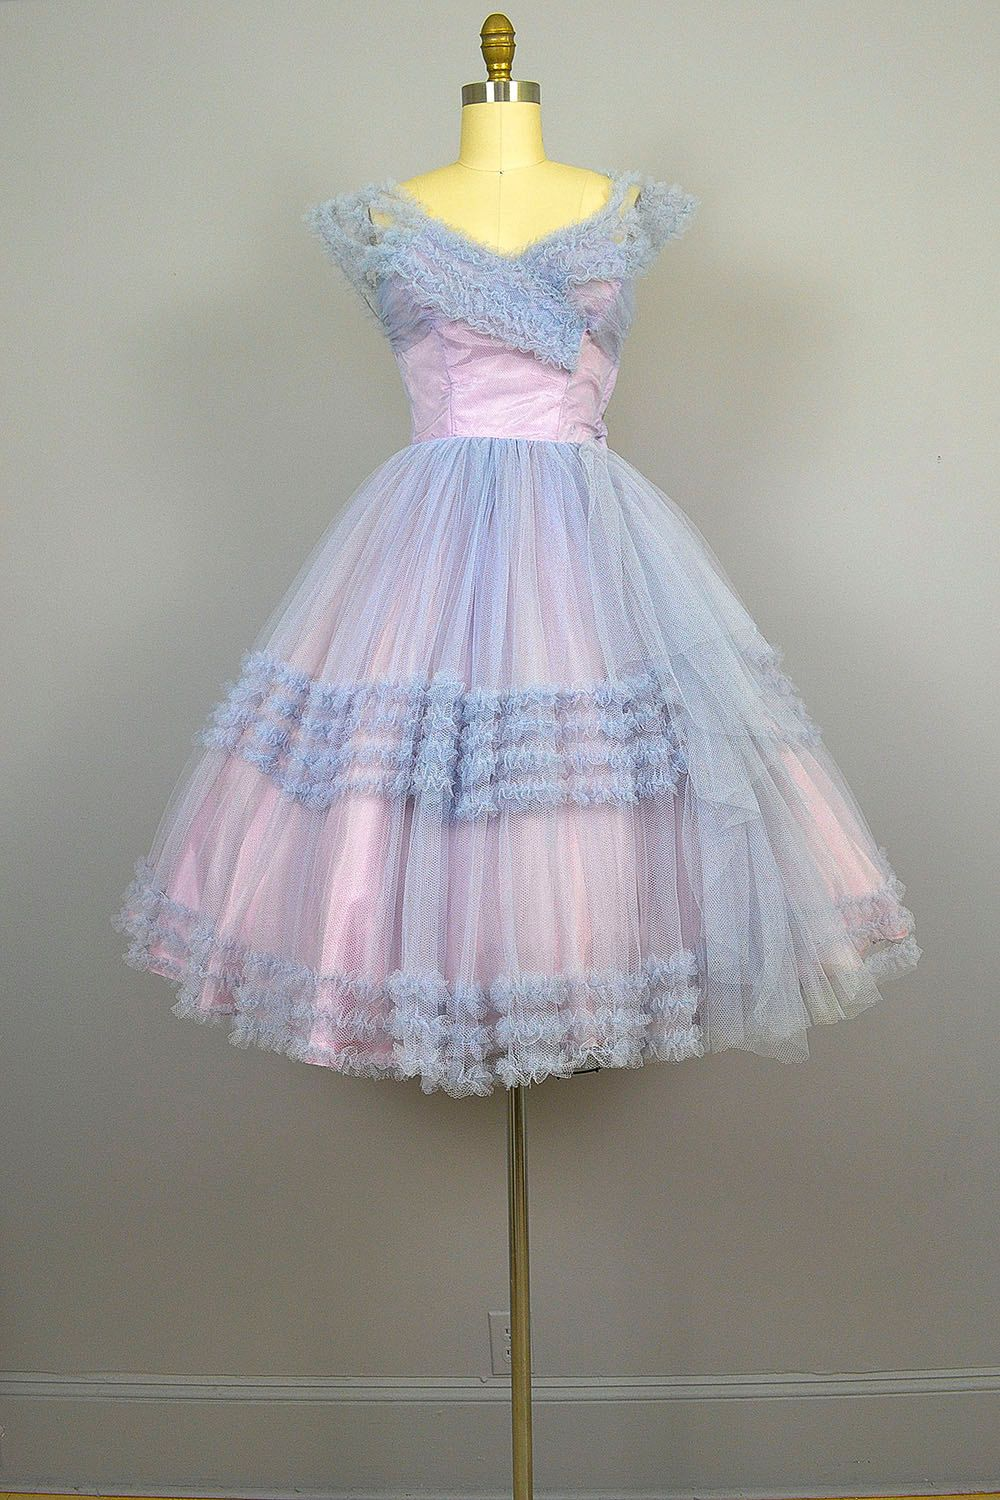 1950s Prom Dress 50s Party Dress Lavender Tulle Etsy 1950s Prom Dress Dresses Pretty Dresses [ 1500 x 1000 Pixel ]